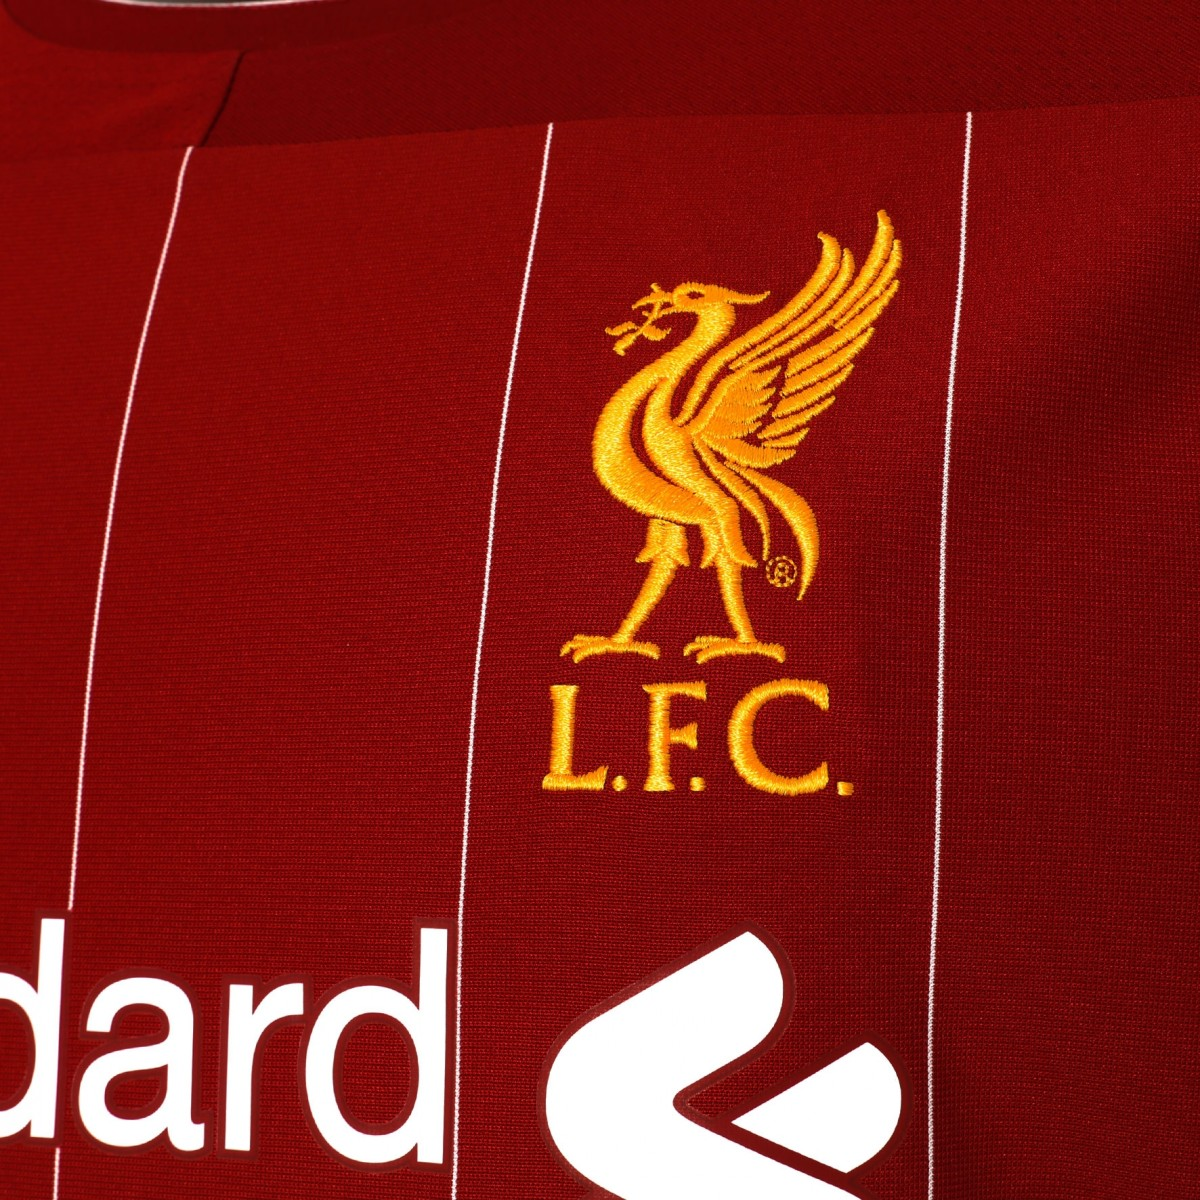 b78aab78cf0 ... Click to enlarge image liverpool 2019 2020 new balance home kit c.jpg  ...